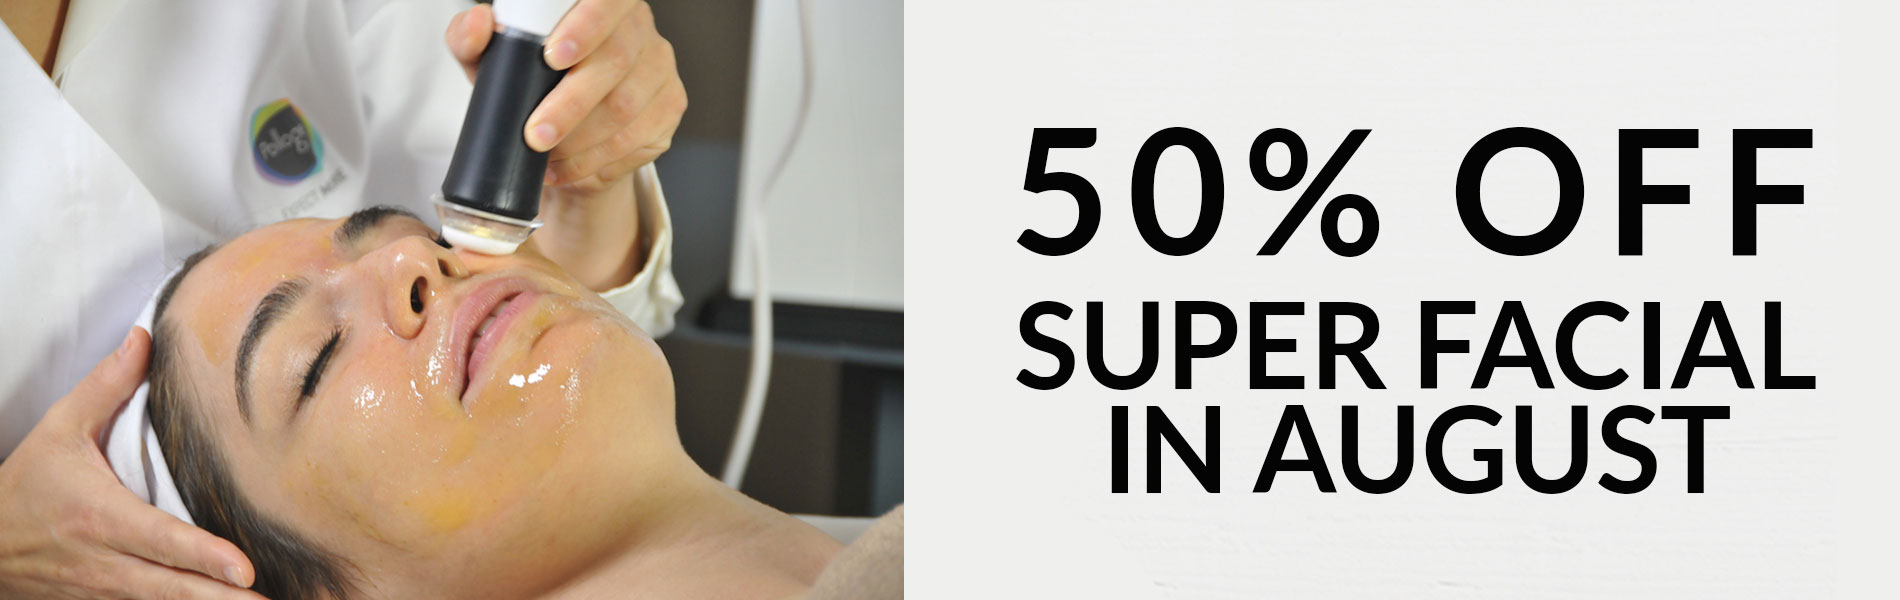 Summer Promotion – 50% OFF Super Facial in August!